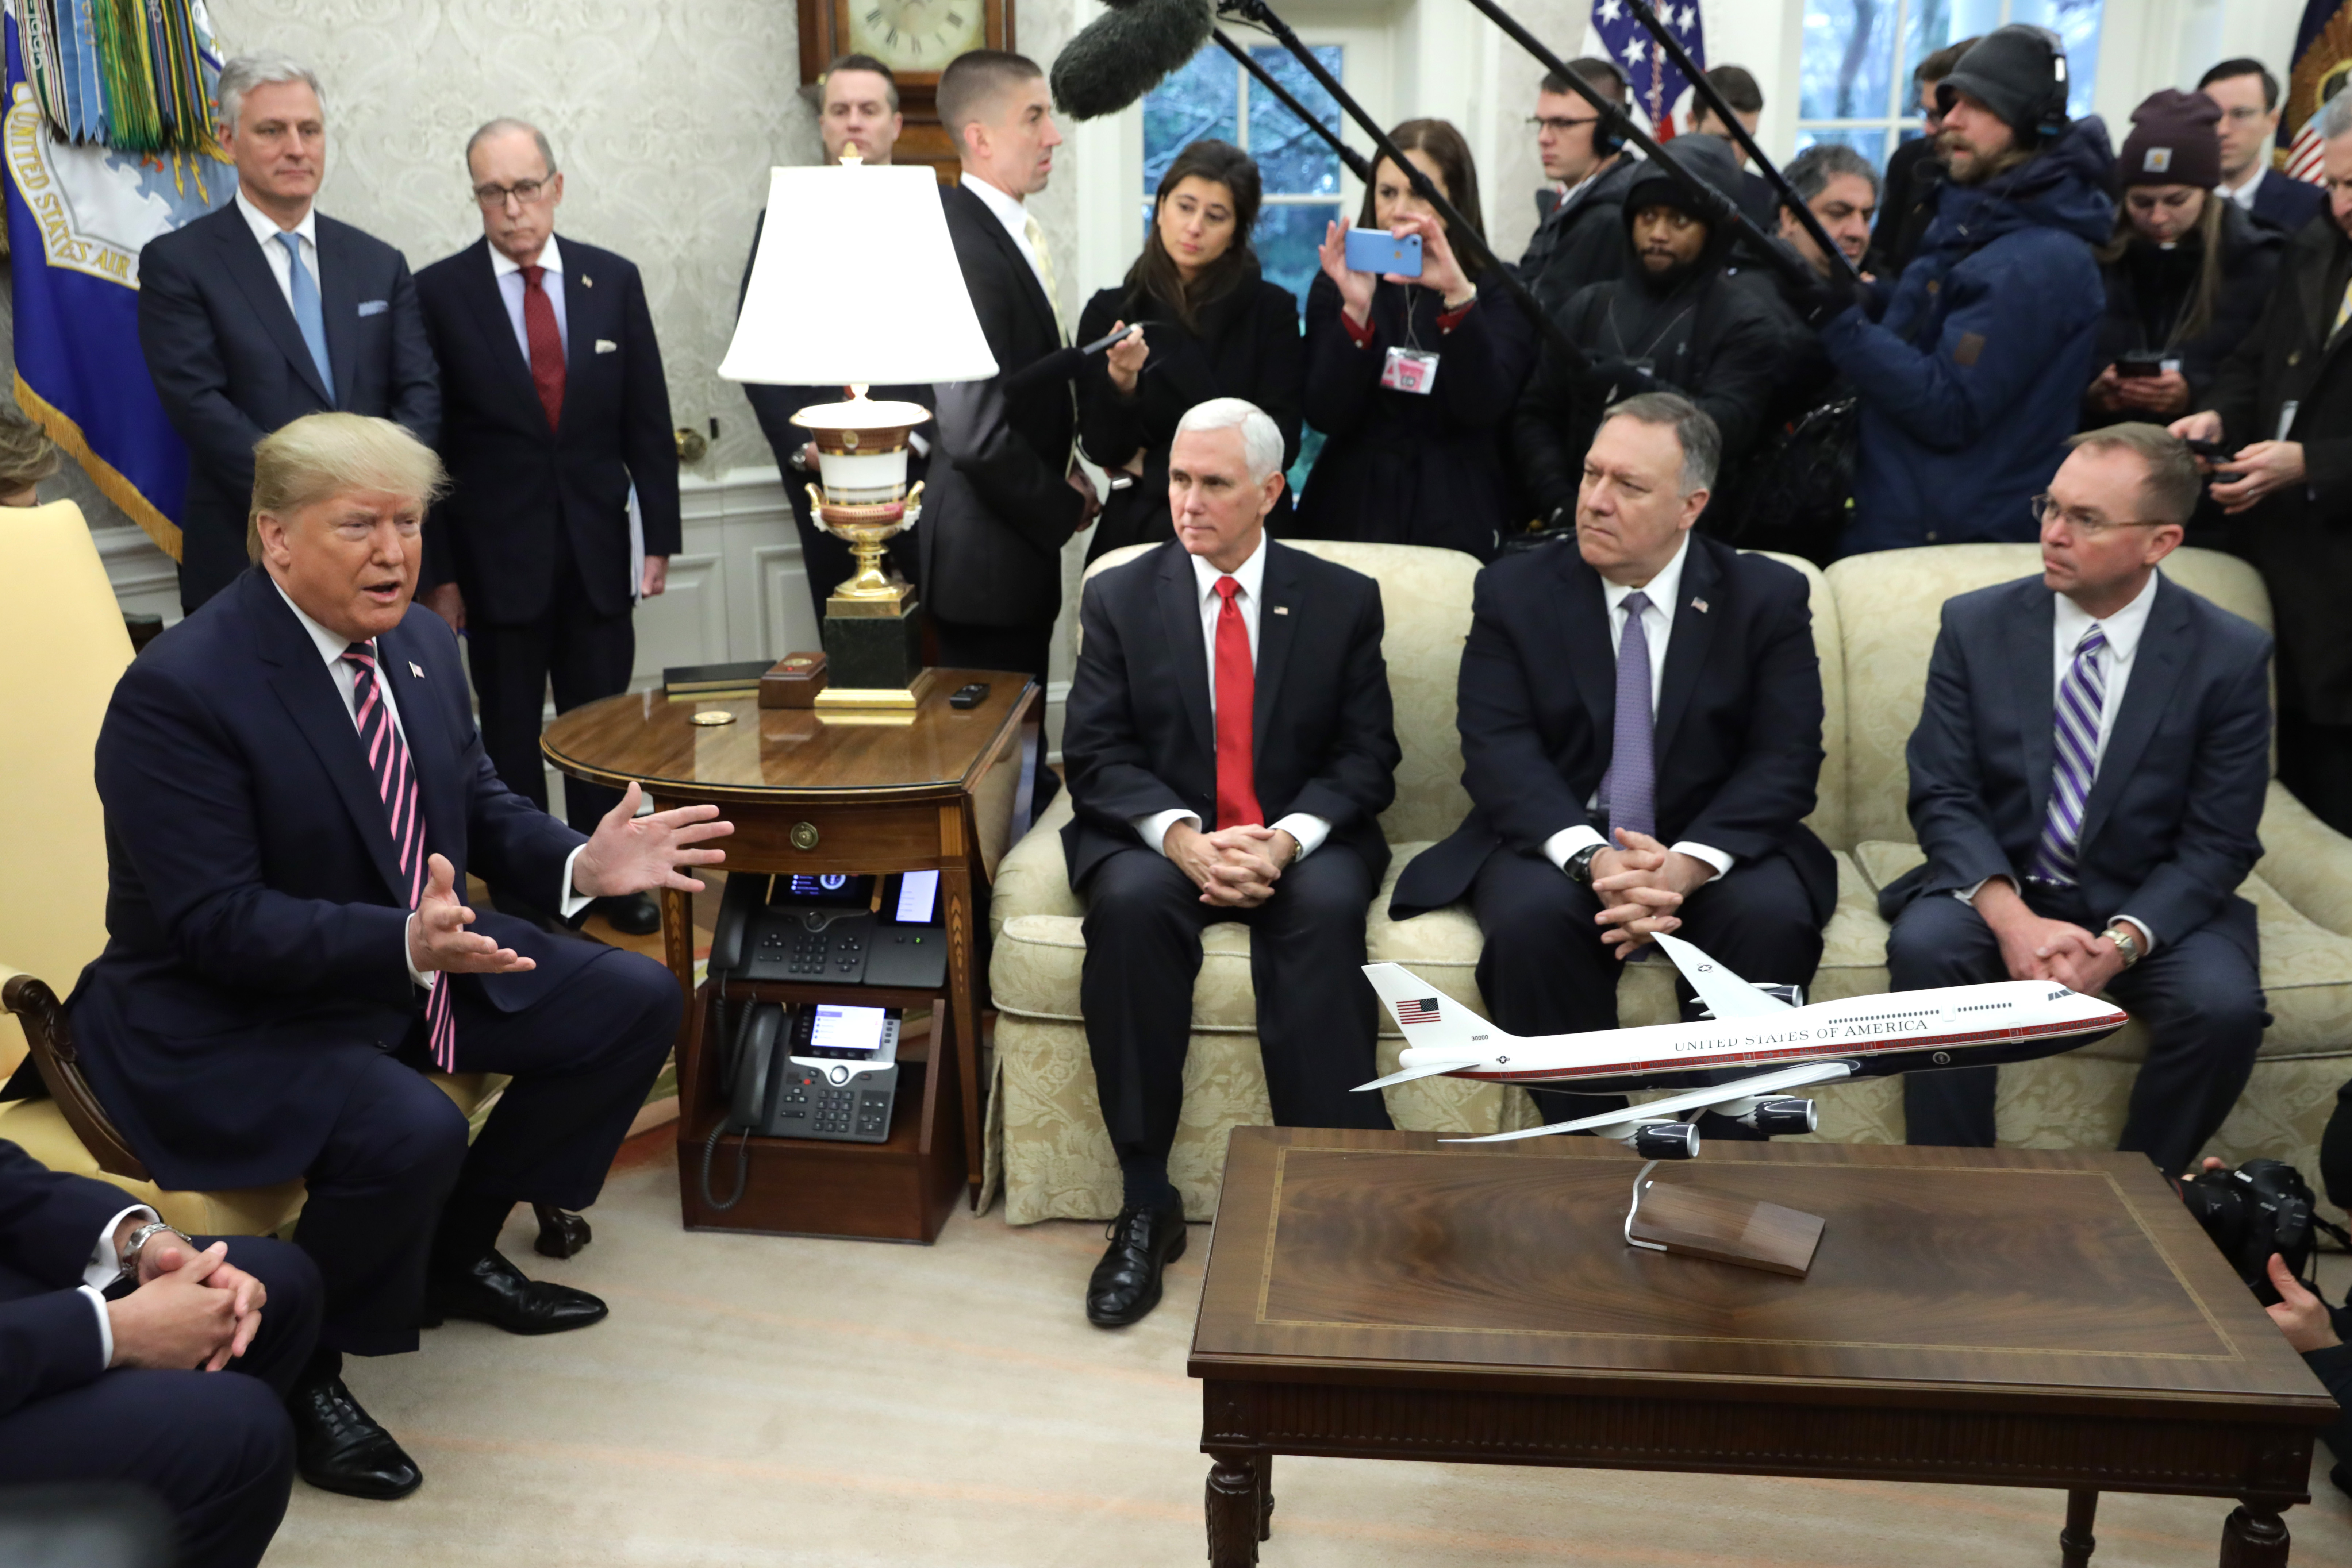 """WASHINGTON, DC - DECEMBER 13: U.S. President Donald Trump speaks to members of the media during a meeting with President of Paraguay Mario Abdo Benitez as (L-R) National Security Advisor Robert O'Brien, Director of National Economic Council Larry Kudlow, U.S. Vice President Mike Pence, U.S. Secretary of State Mike Pompeo, and Acting White House Chief of Staff Mick Mulvaney listen in the Oval Office of the White House December 13, 2019 in Washington, DC. According to a White House news release, Benitez's visit focuses on """"strengthening cooperation between the United States and Paraguay to bring improved economic prosperity and support democracy in Paraguay and the region."""" (Photo by Alex Wong/Getty Images)"""